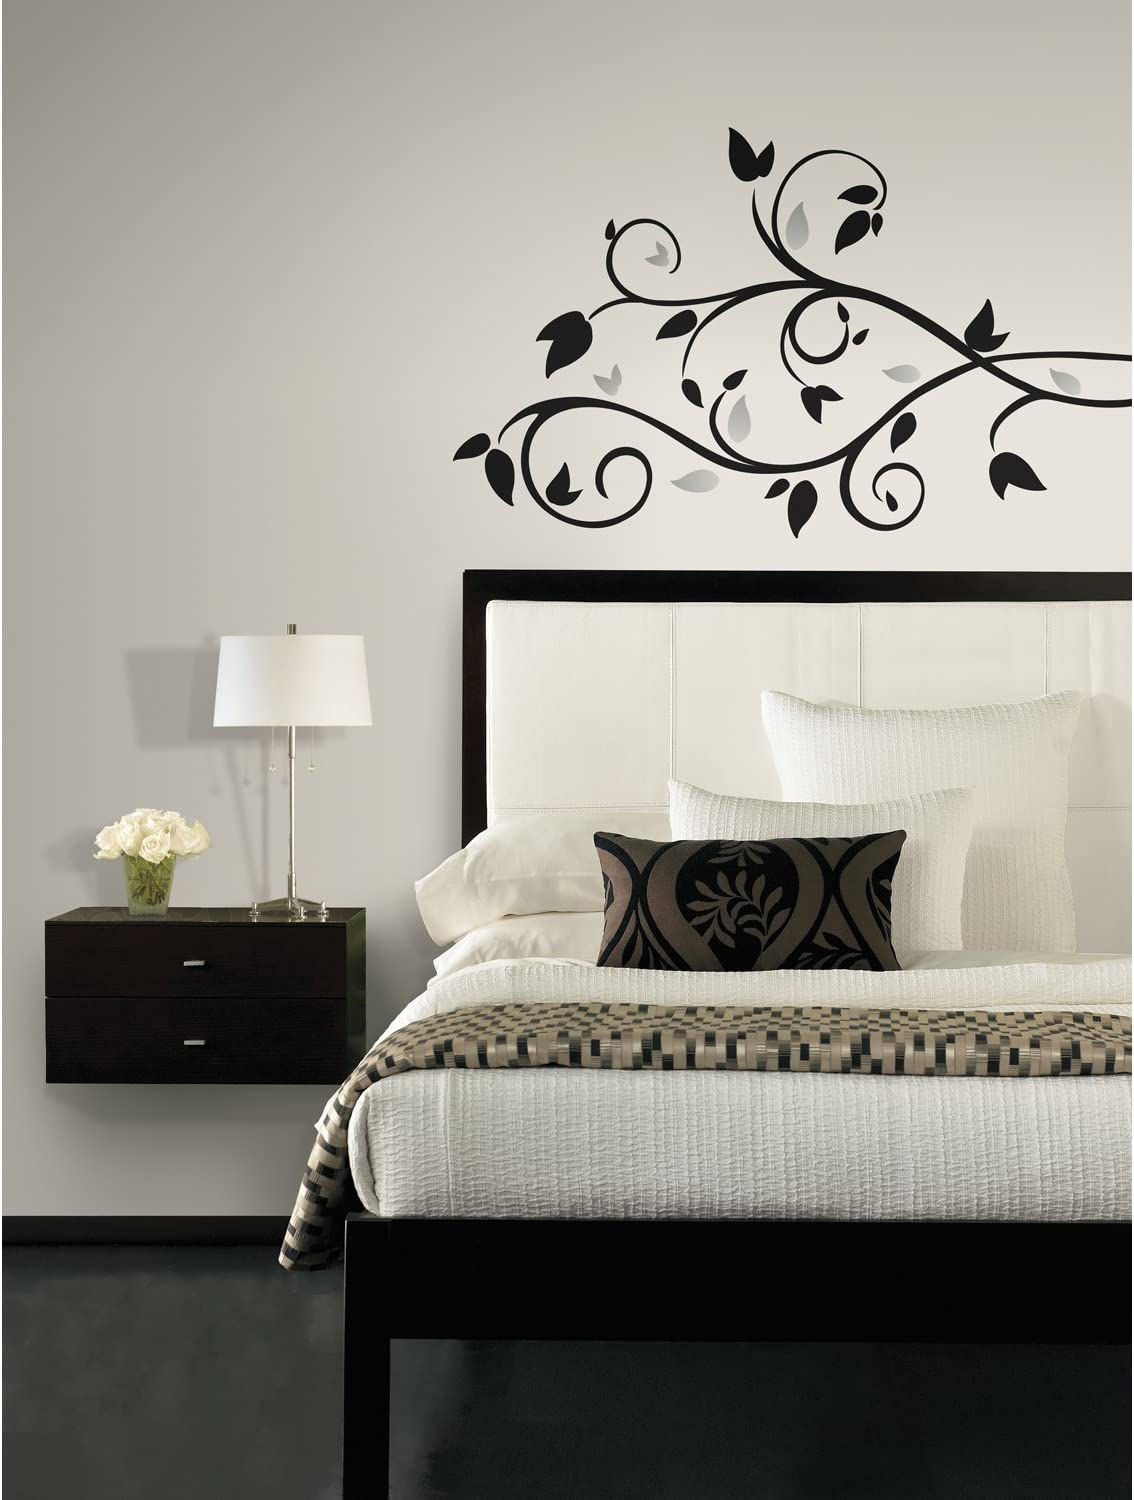 RoomMates Foil Tree Branch Peel and Stick Wall Decal